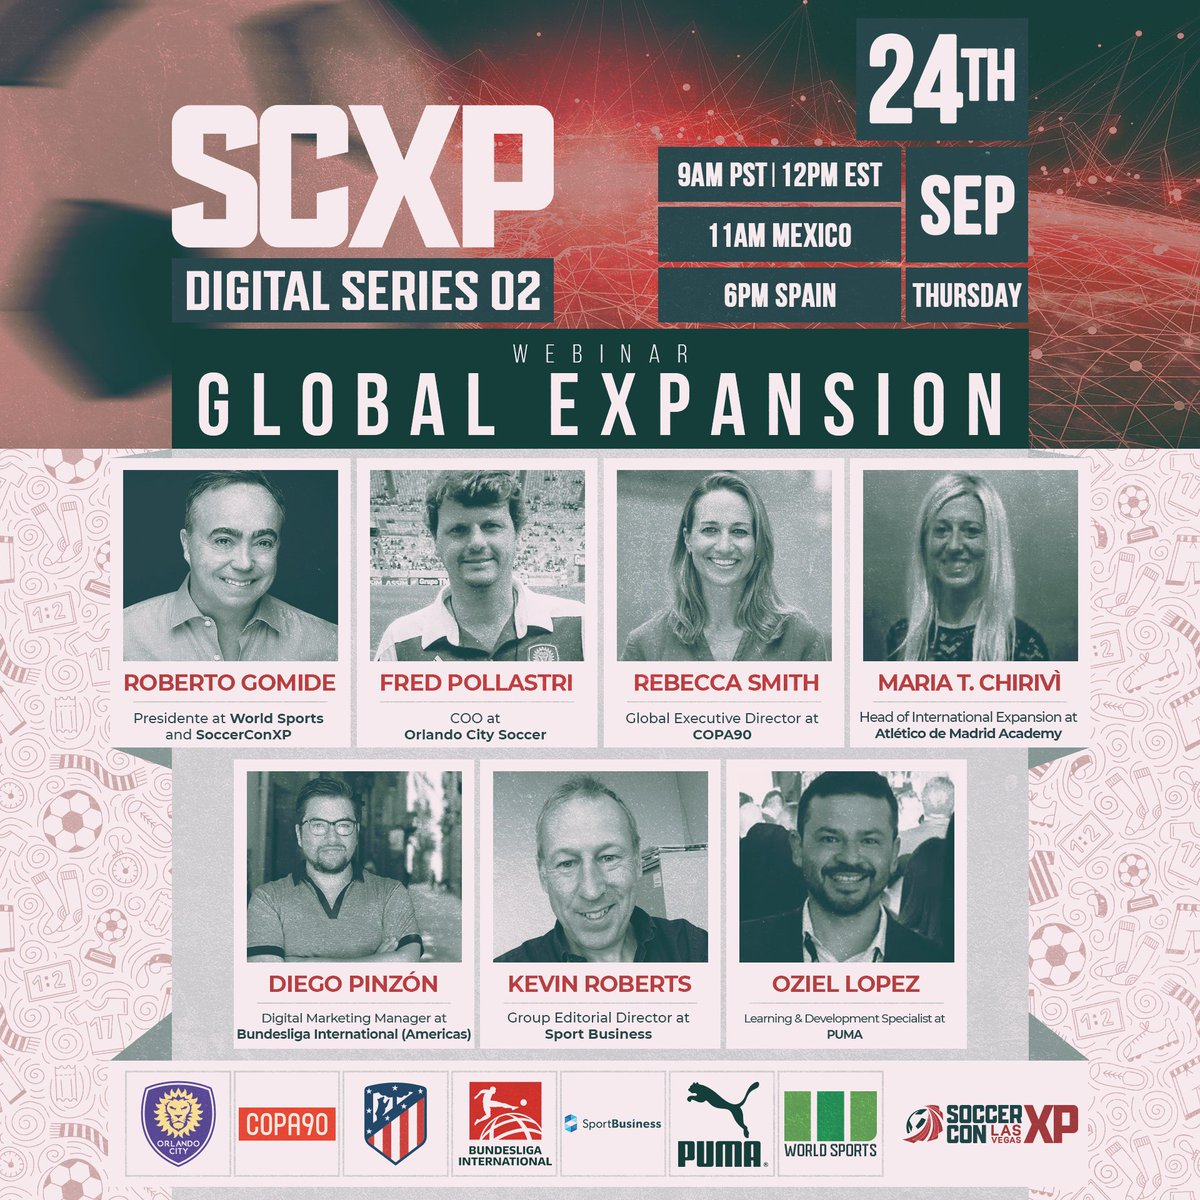 SoccerConXP Digital Series 2: GLOBAL EXPANSION 👉Register now and join us at https://t.co/rE6OIuQYv2 --- #AllOnOne #SCXP #soccer #futbol #futebol #event #lasvegas https://t.co/rSEsBBH9dr